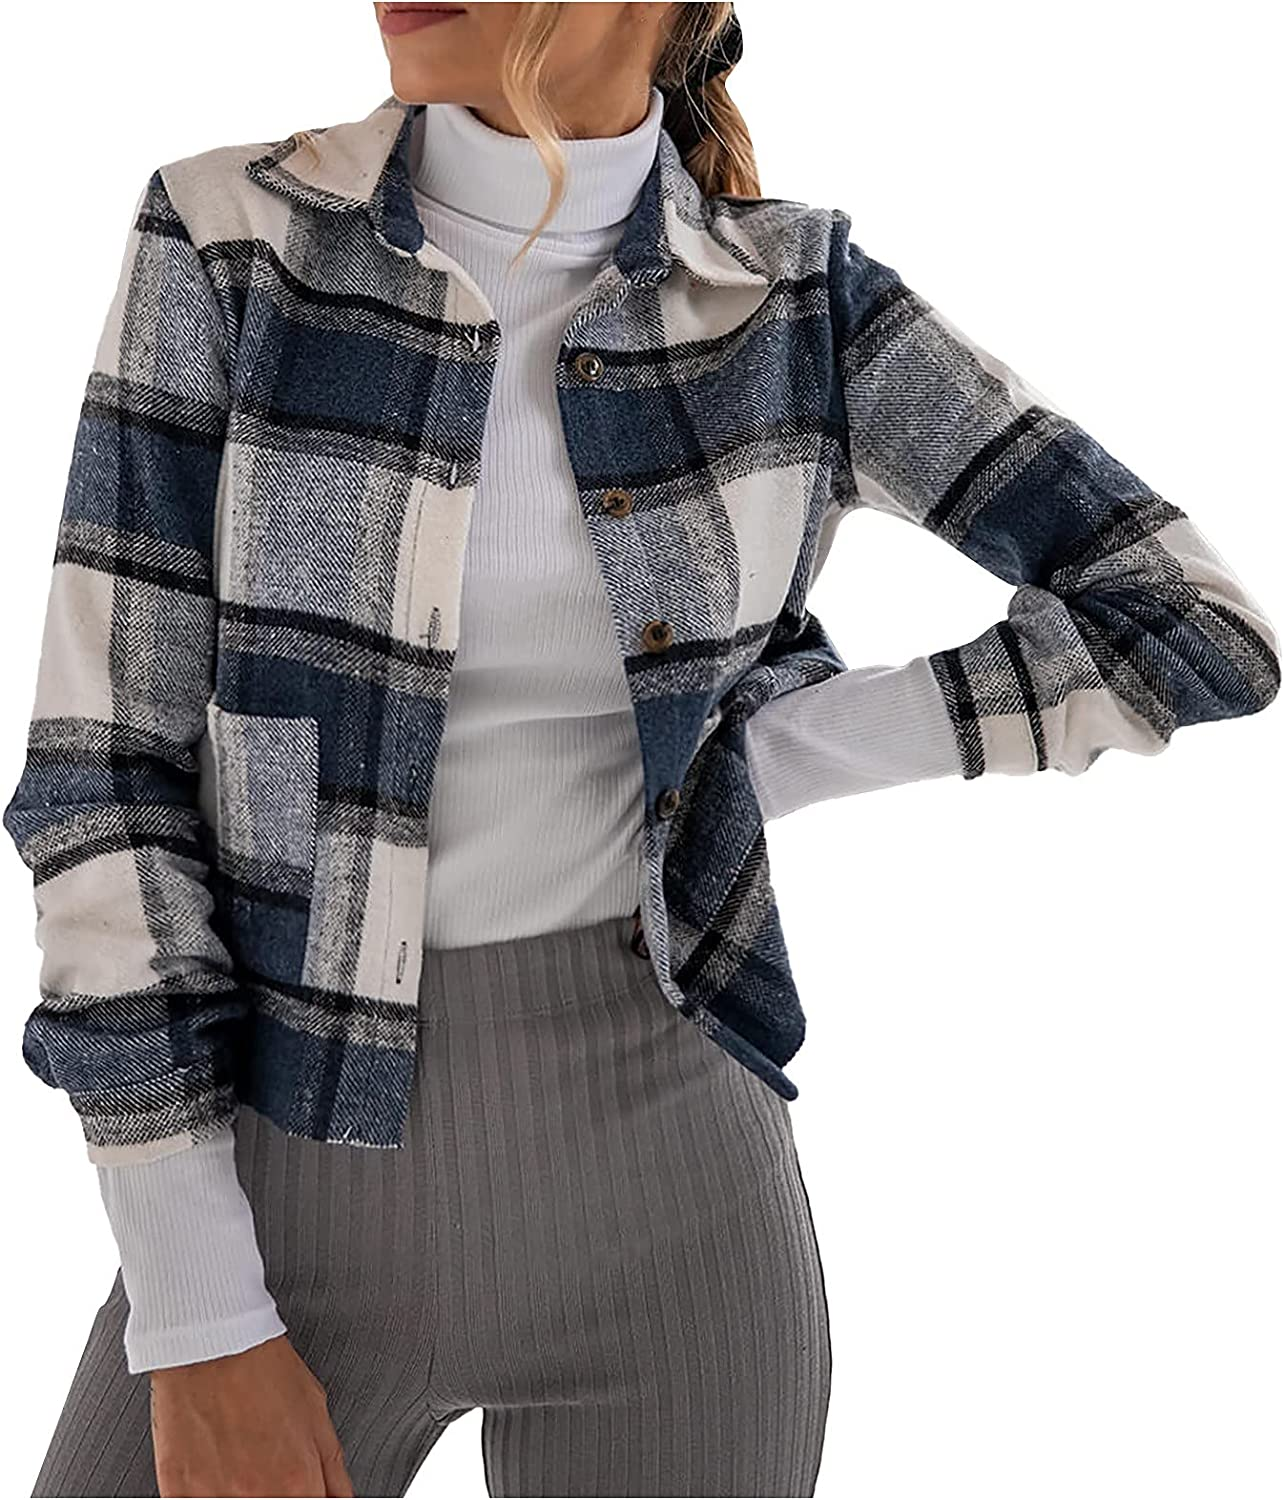 VonVonCo Fashion Cardigan Sweaters for Women Casual Lattice Printed Buttons Long Sleeve Tunic Blouse Shirt